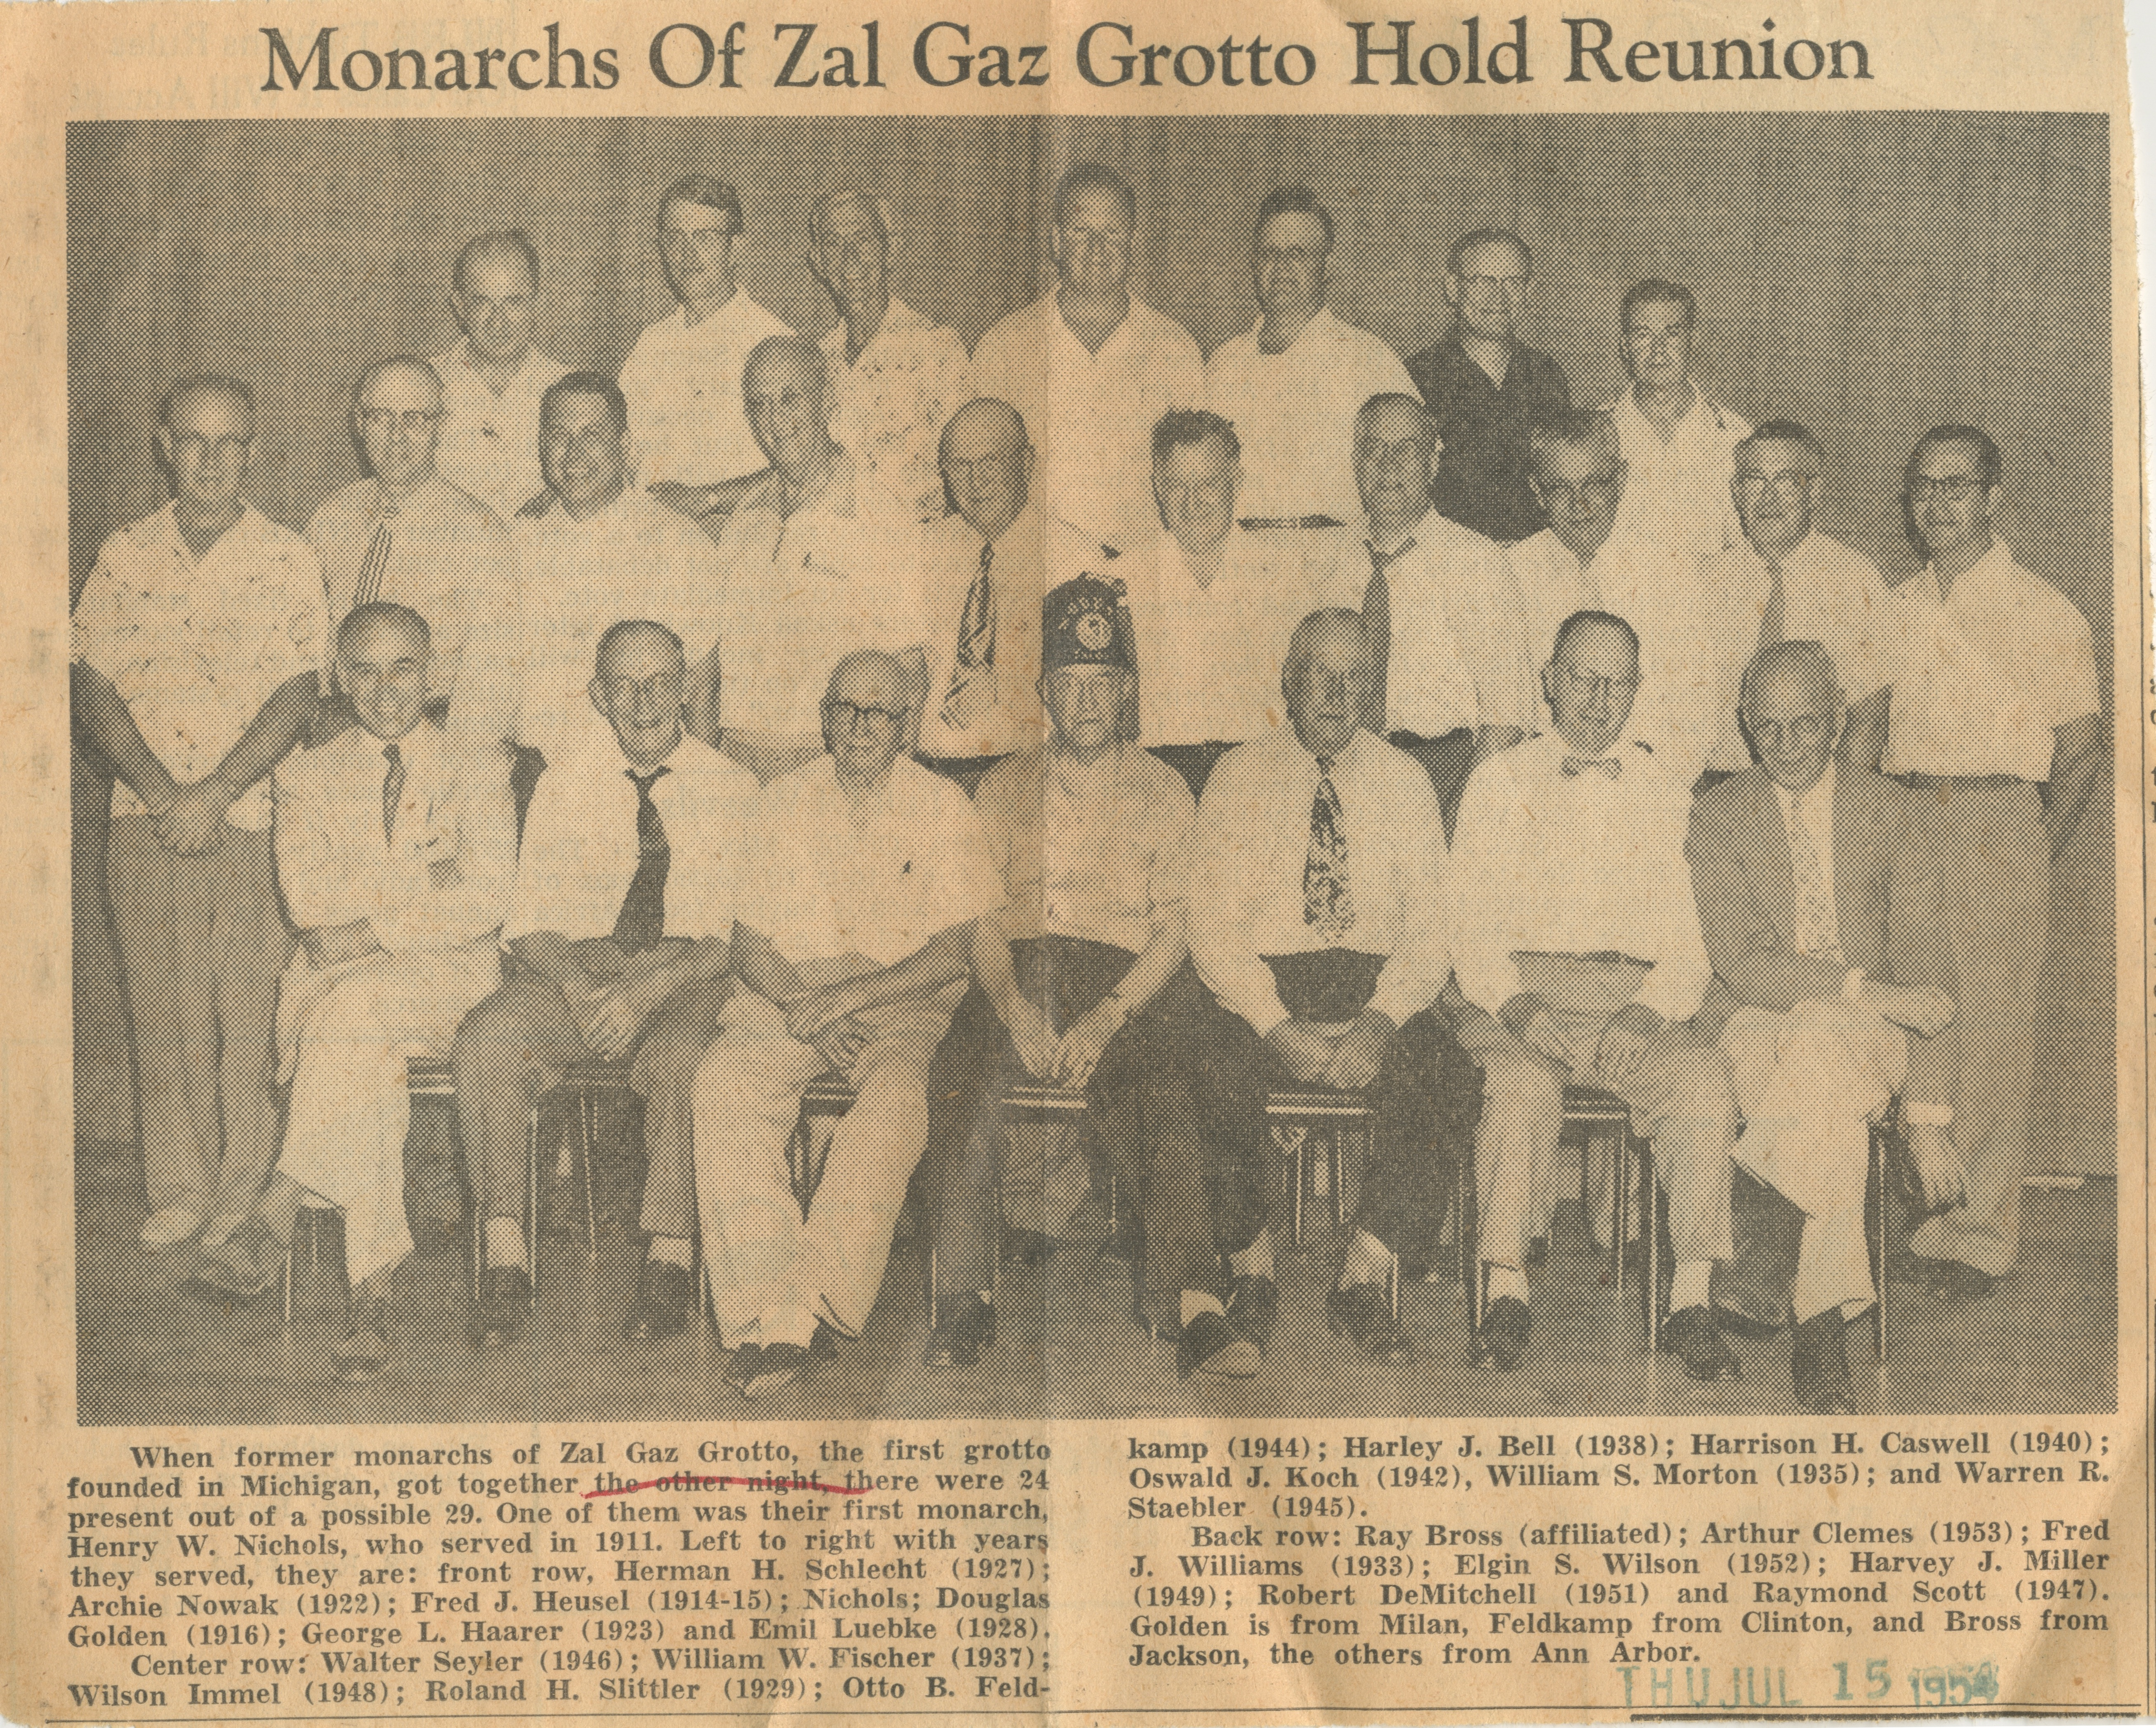 Monarchs Of Zal Gaz Grotto Hold Reunion image